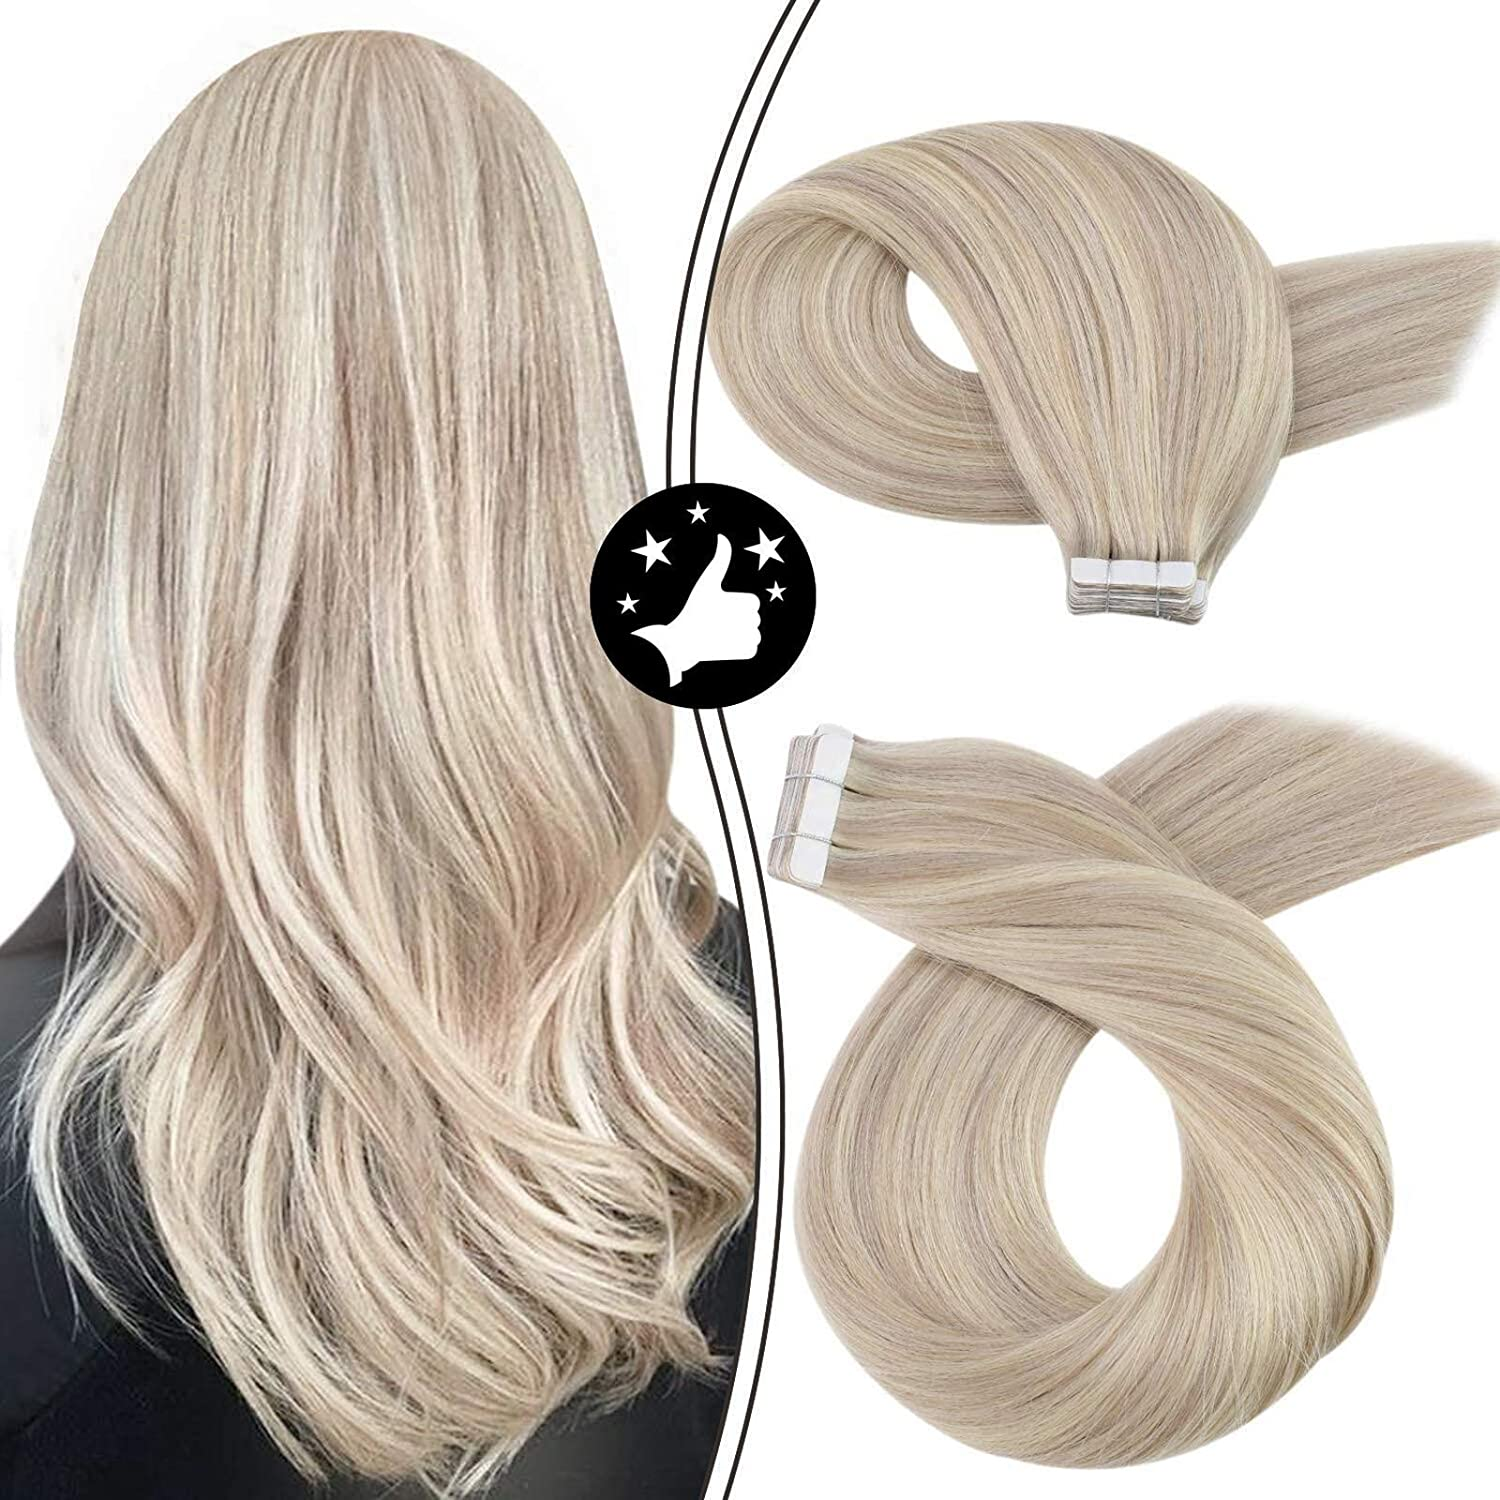 Moresoo Blonde Tape in Hair 24inch gift Extensions Human Seamles It is very popular